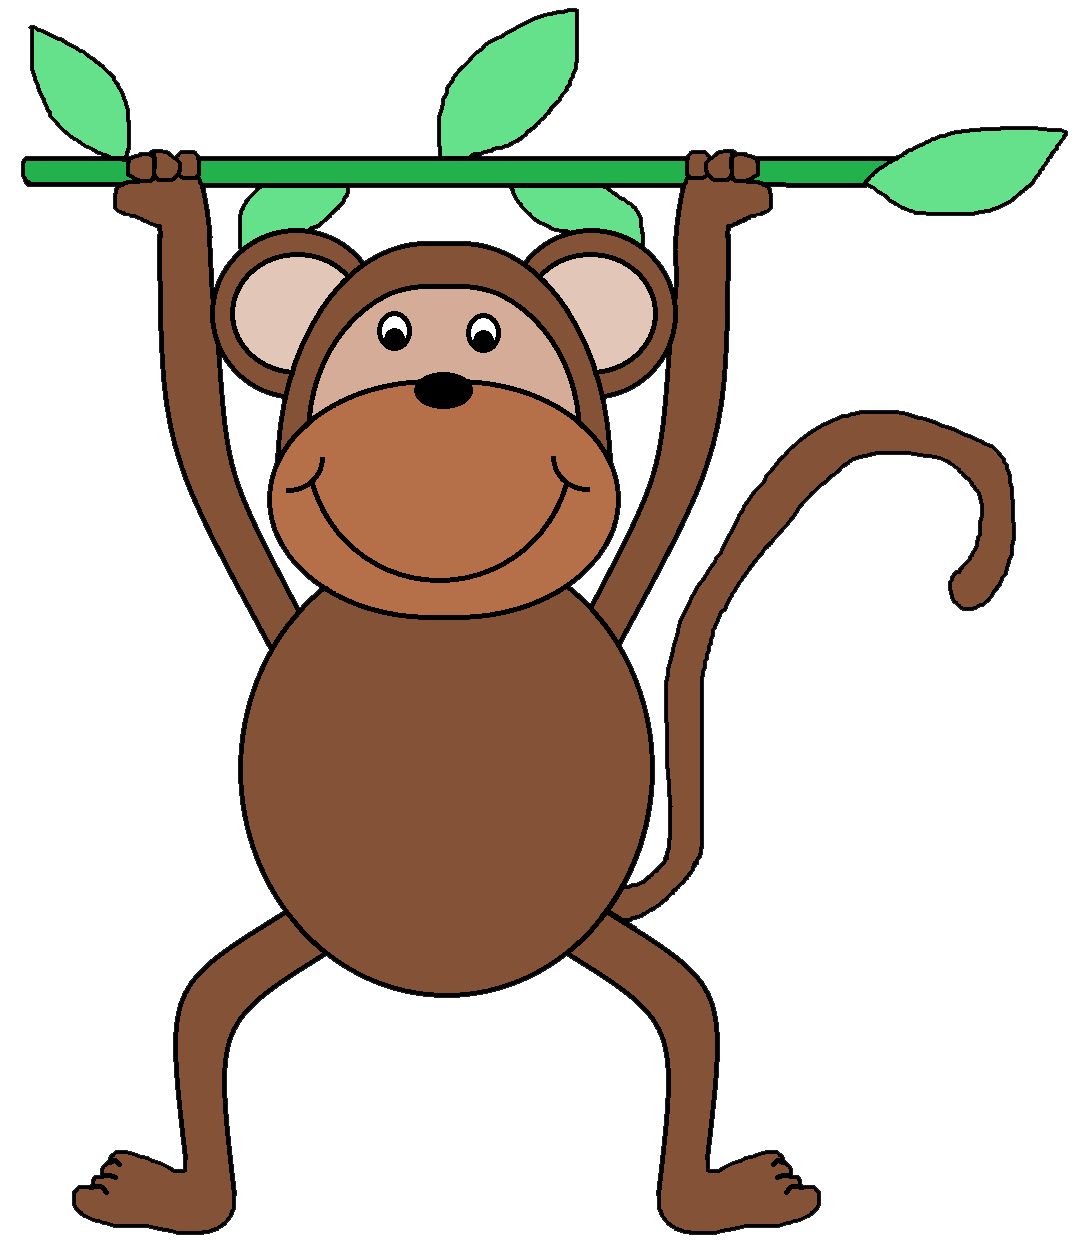 Teeth clipart monkey. Free safari cliparts download